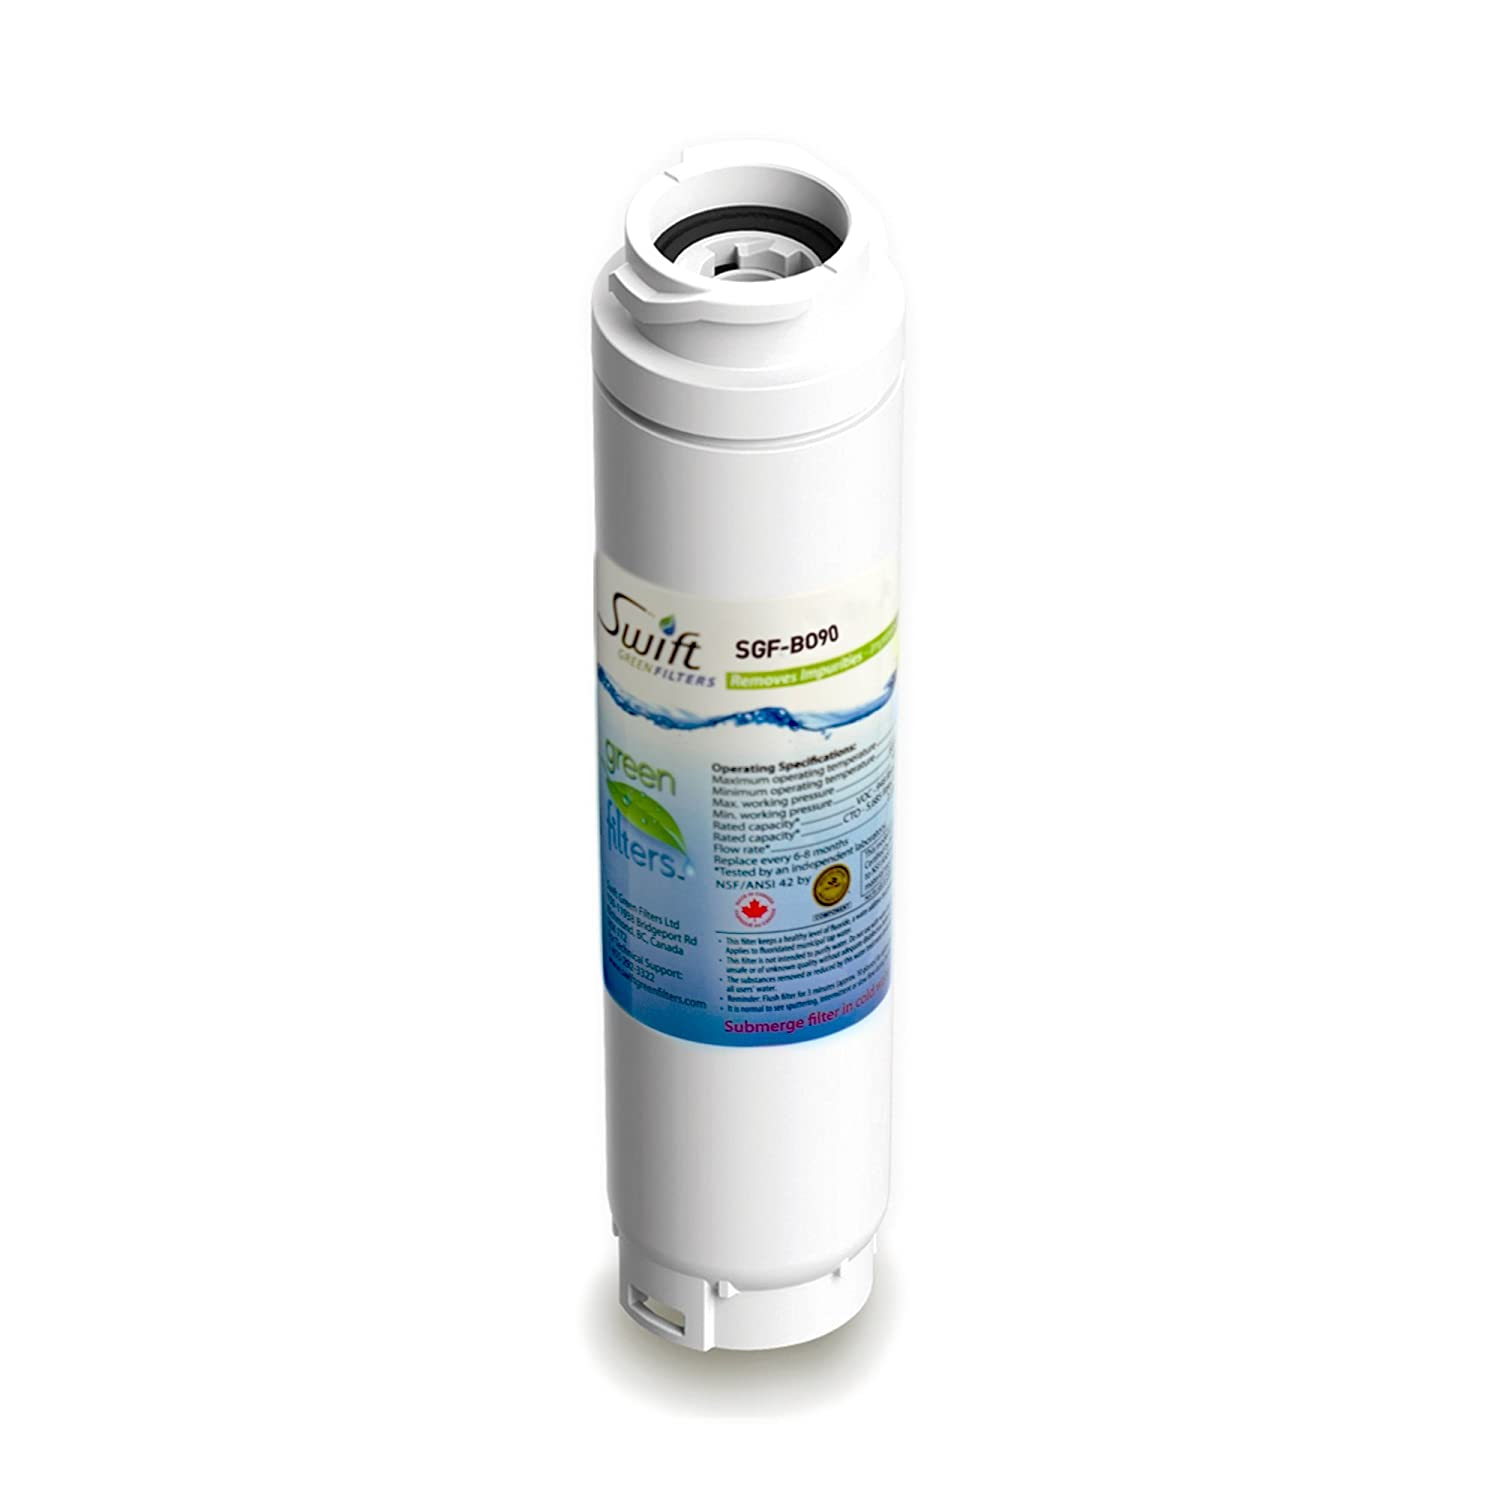 Bosch replacement water filter BT-644548, AP3962558, REPLFLTR10, 9000077095, KWF1000, RF280013 100% recyclable, and made in U.S.A. and Canada SGF-BO90